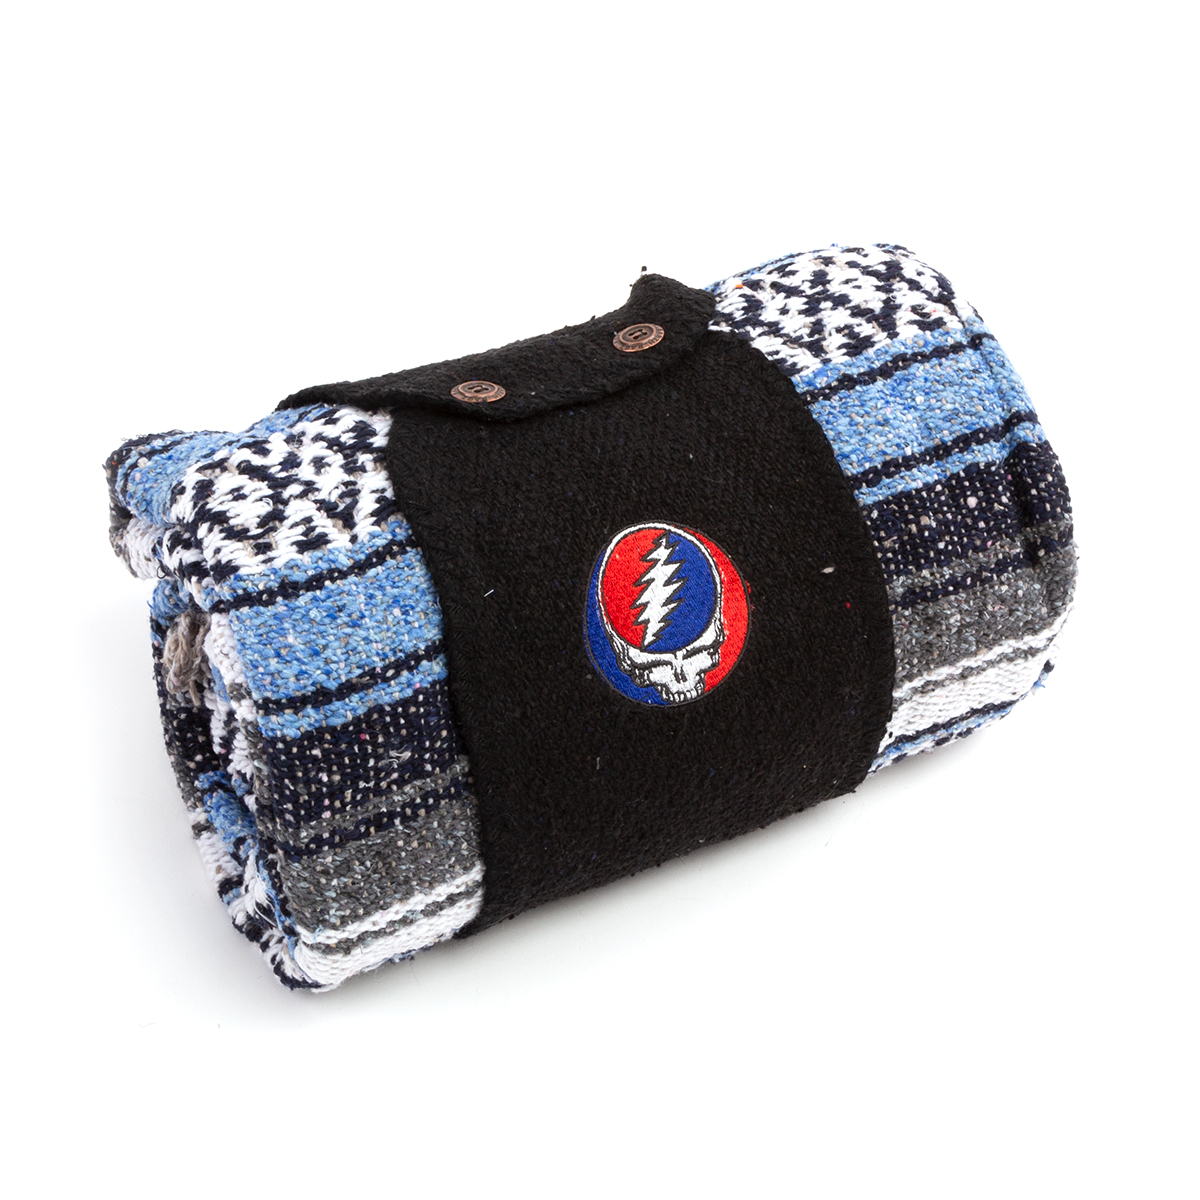 Steal Your Face Baja Blanket